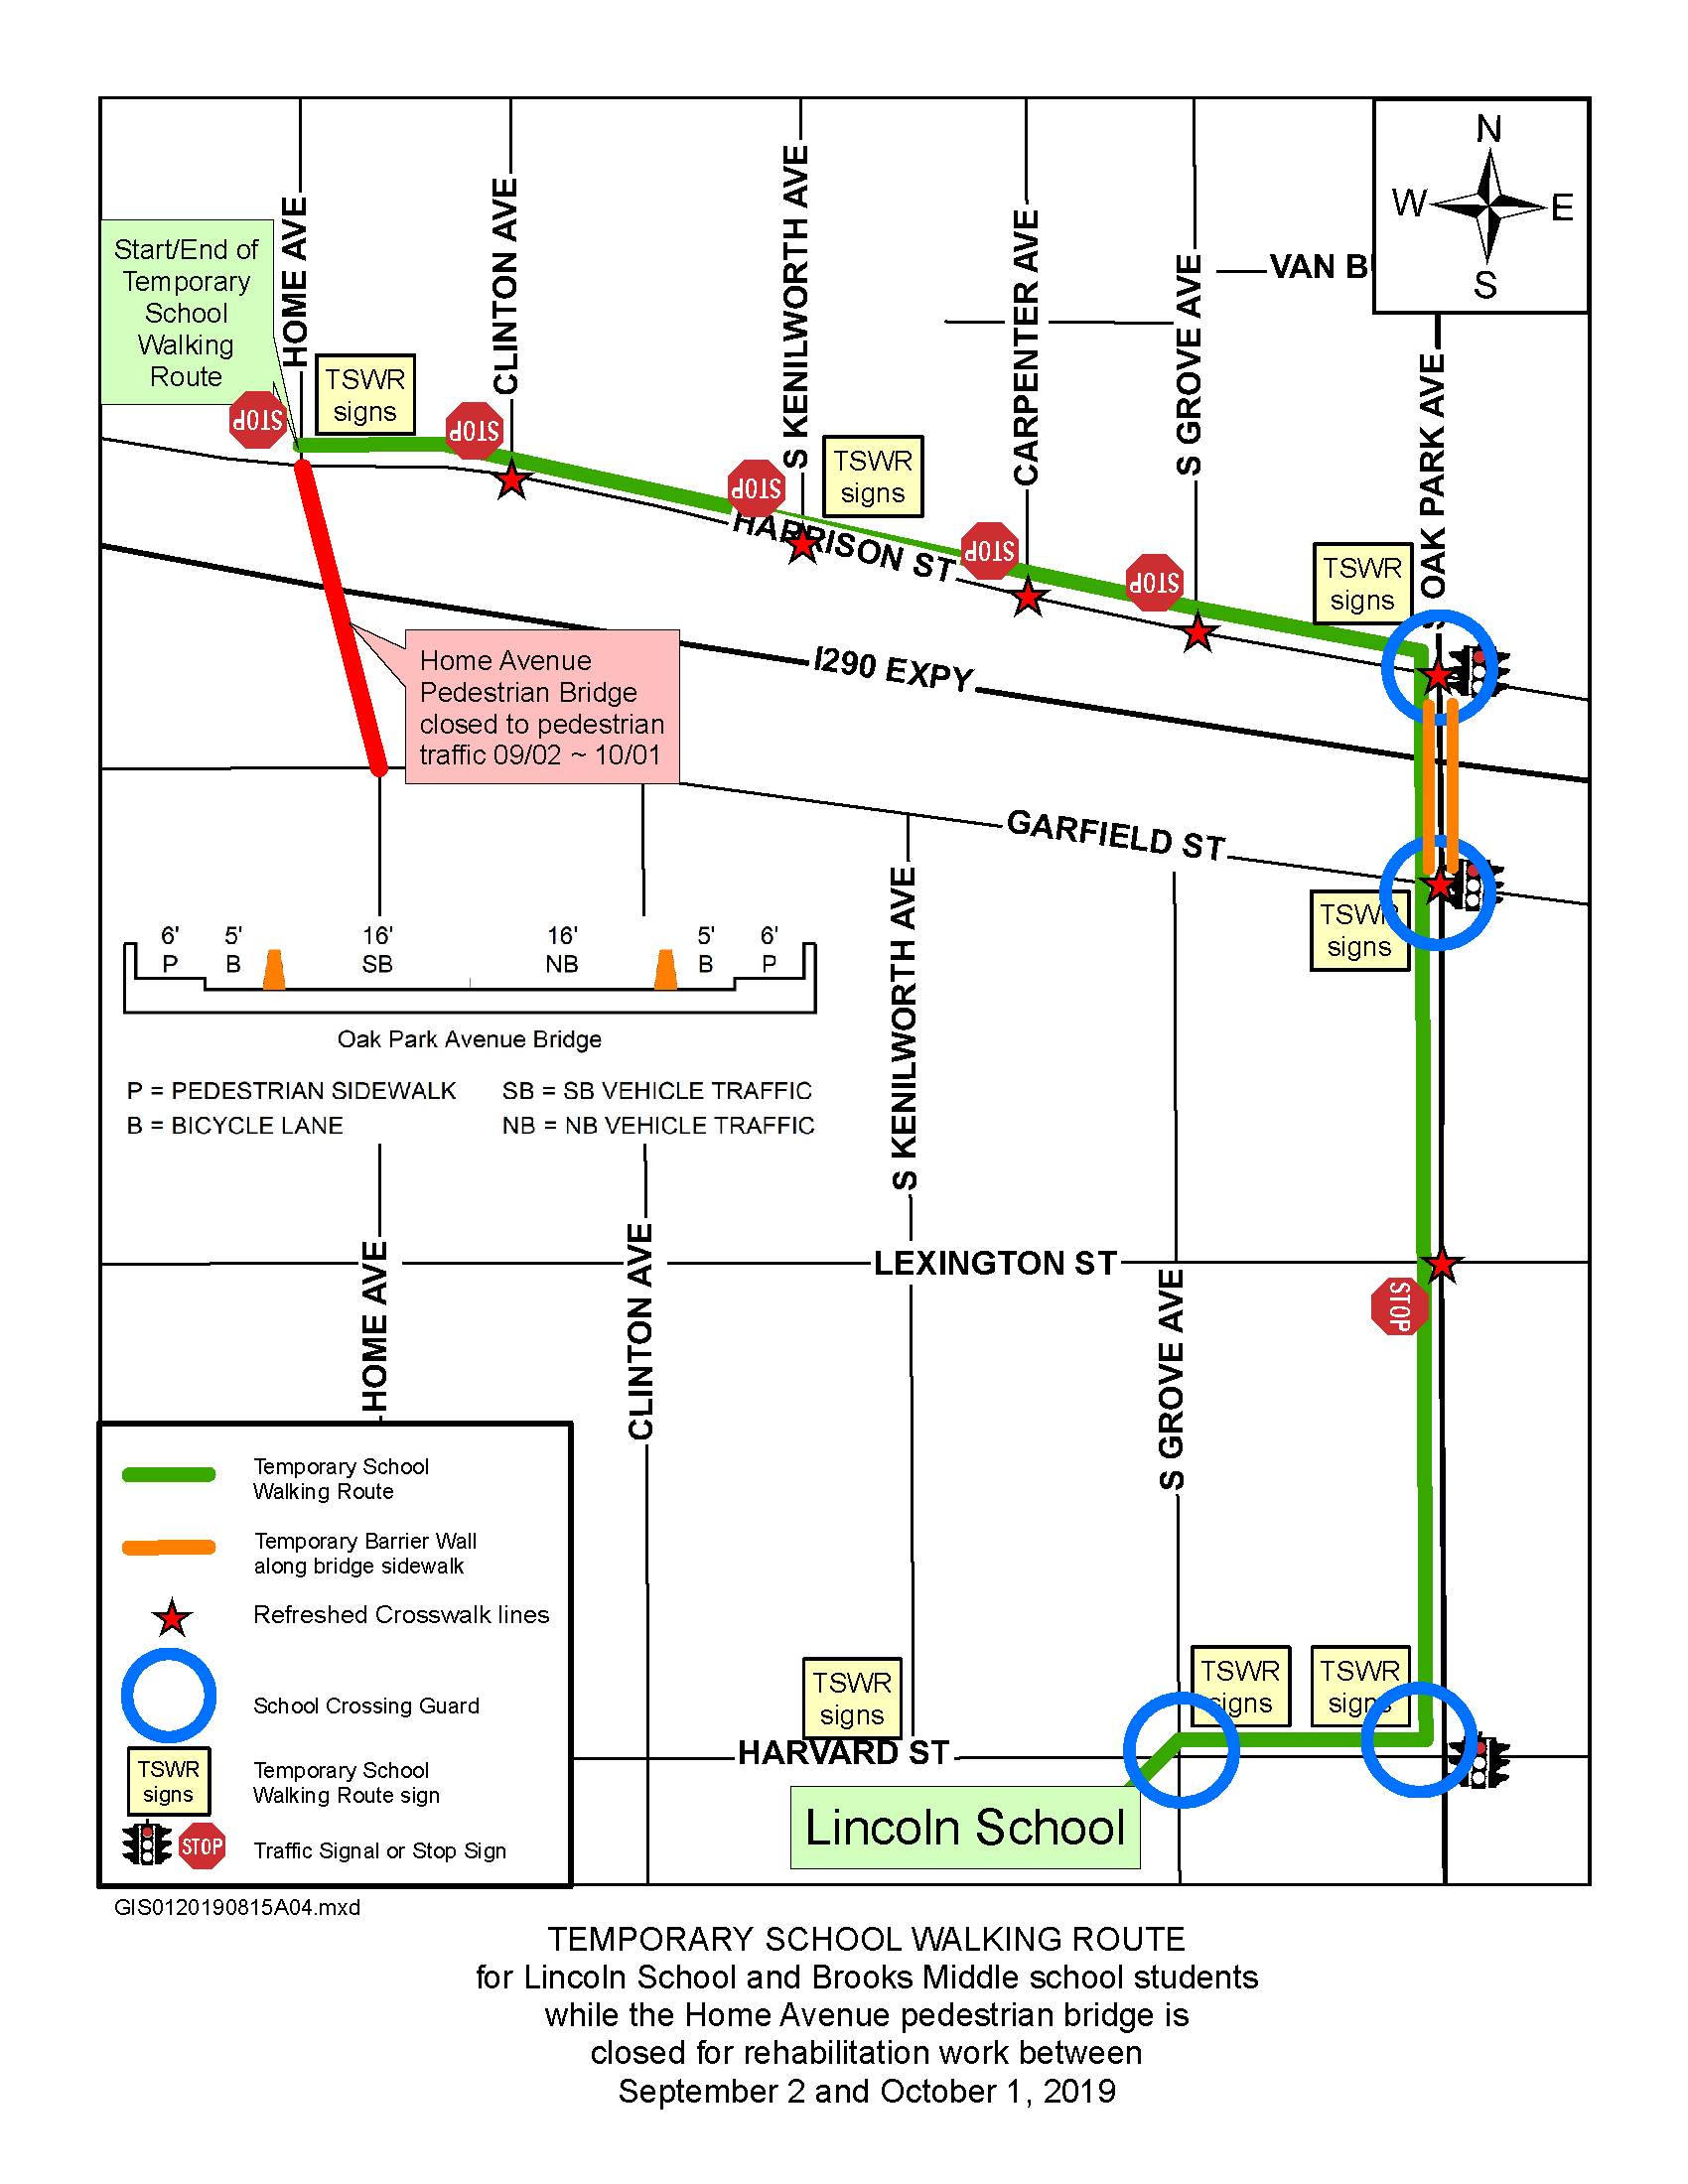 Map of Home Avenue Closure and Alternative Safe Walking Route